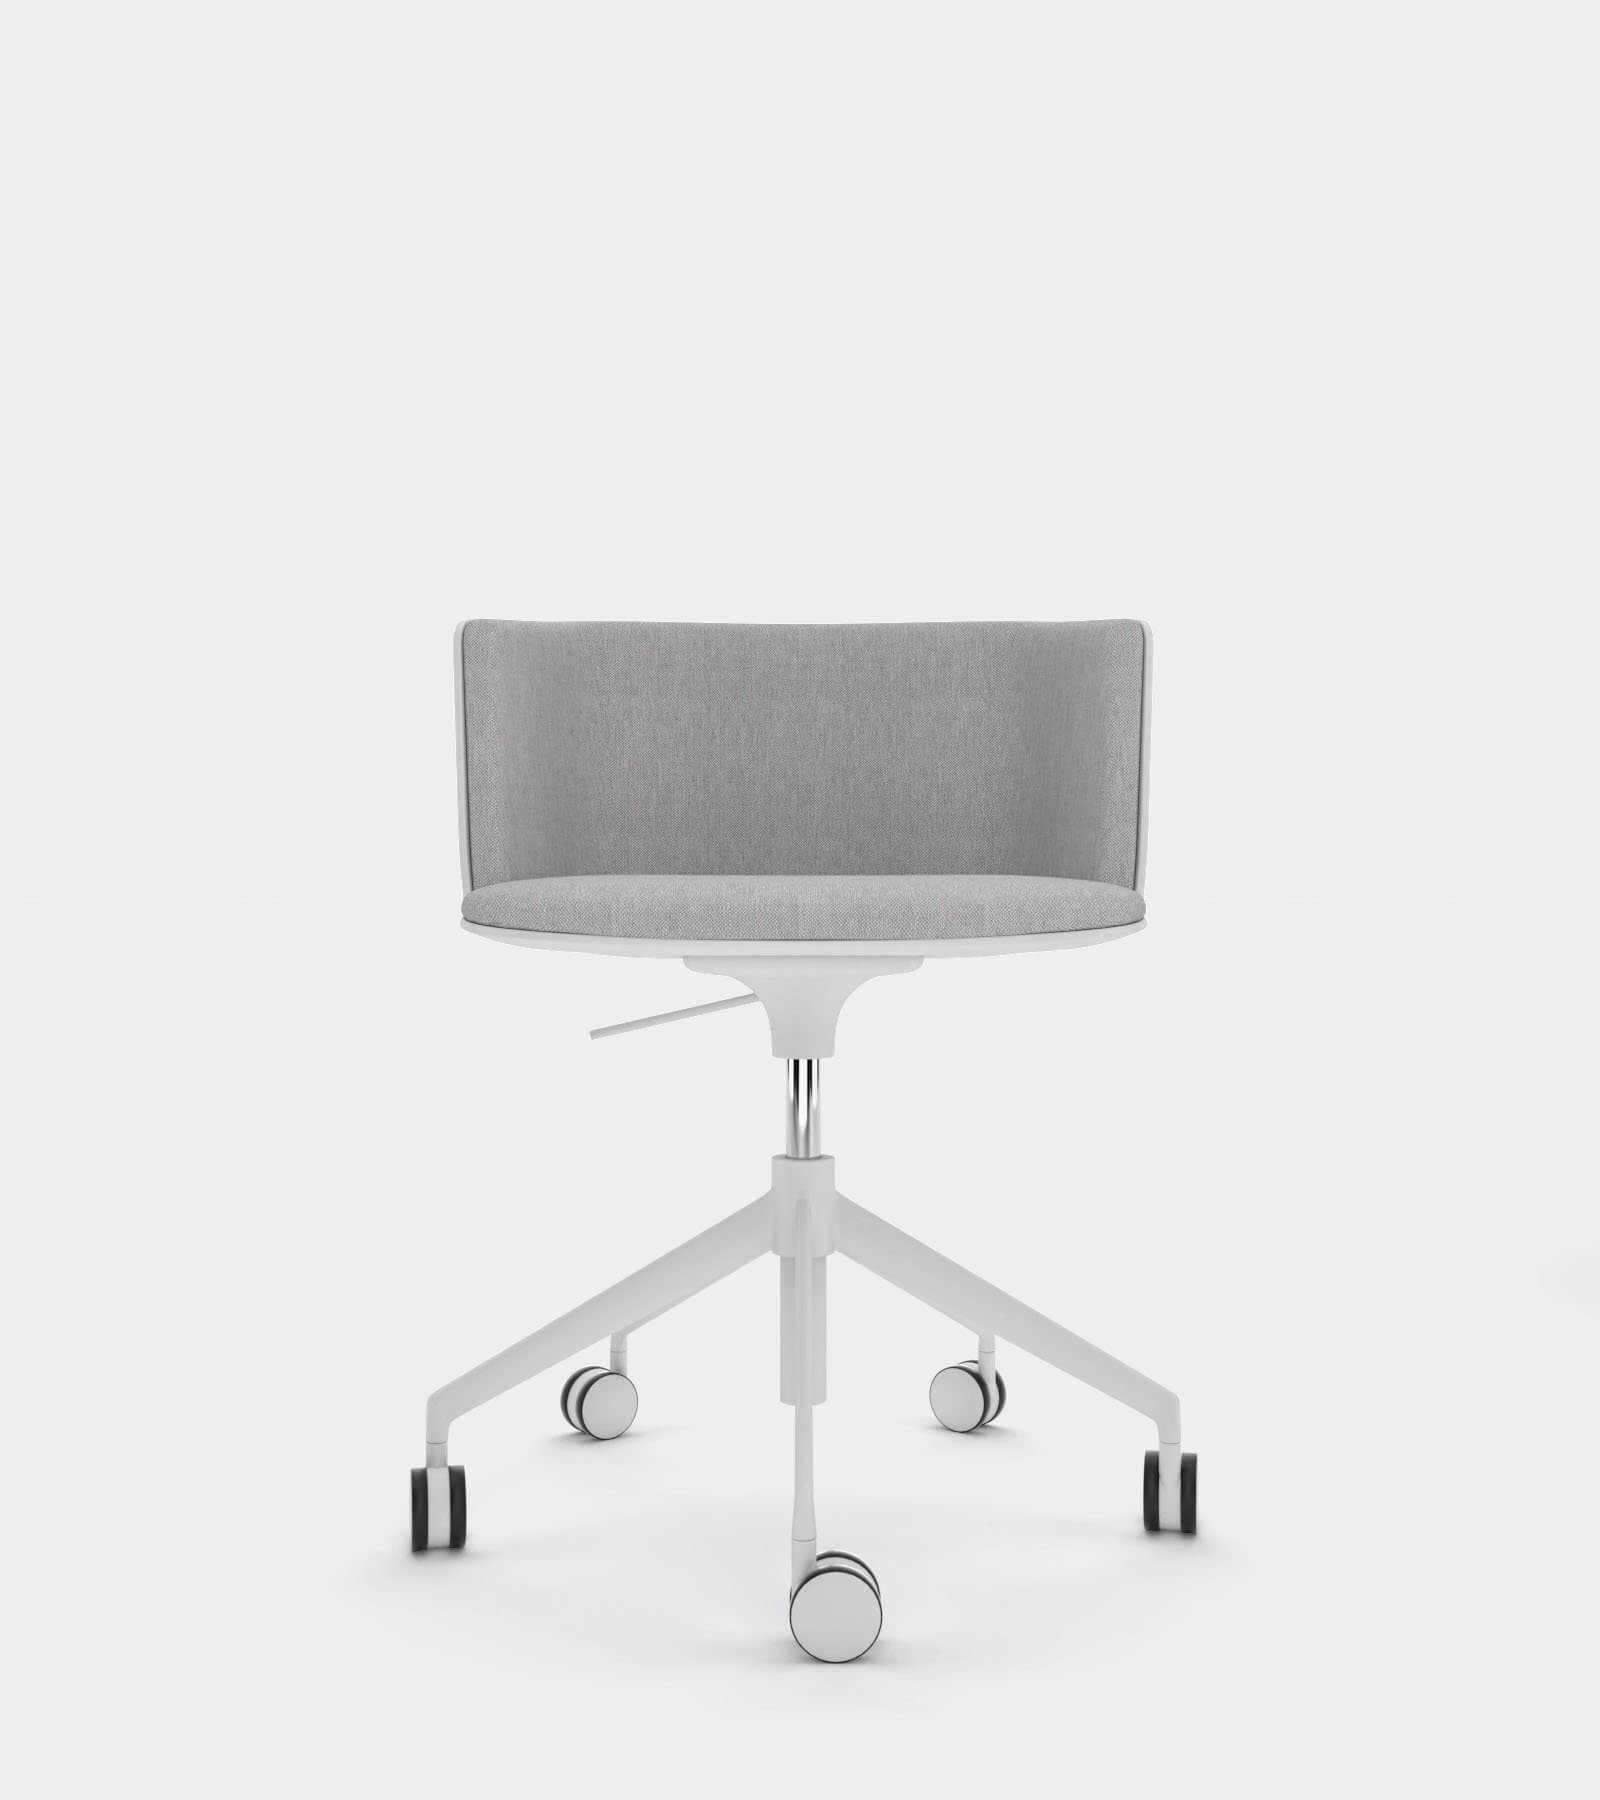 Wheel chair with fabric seat 2 3D Model